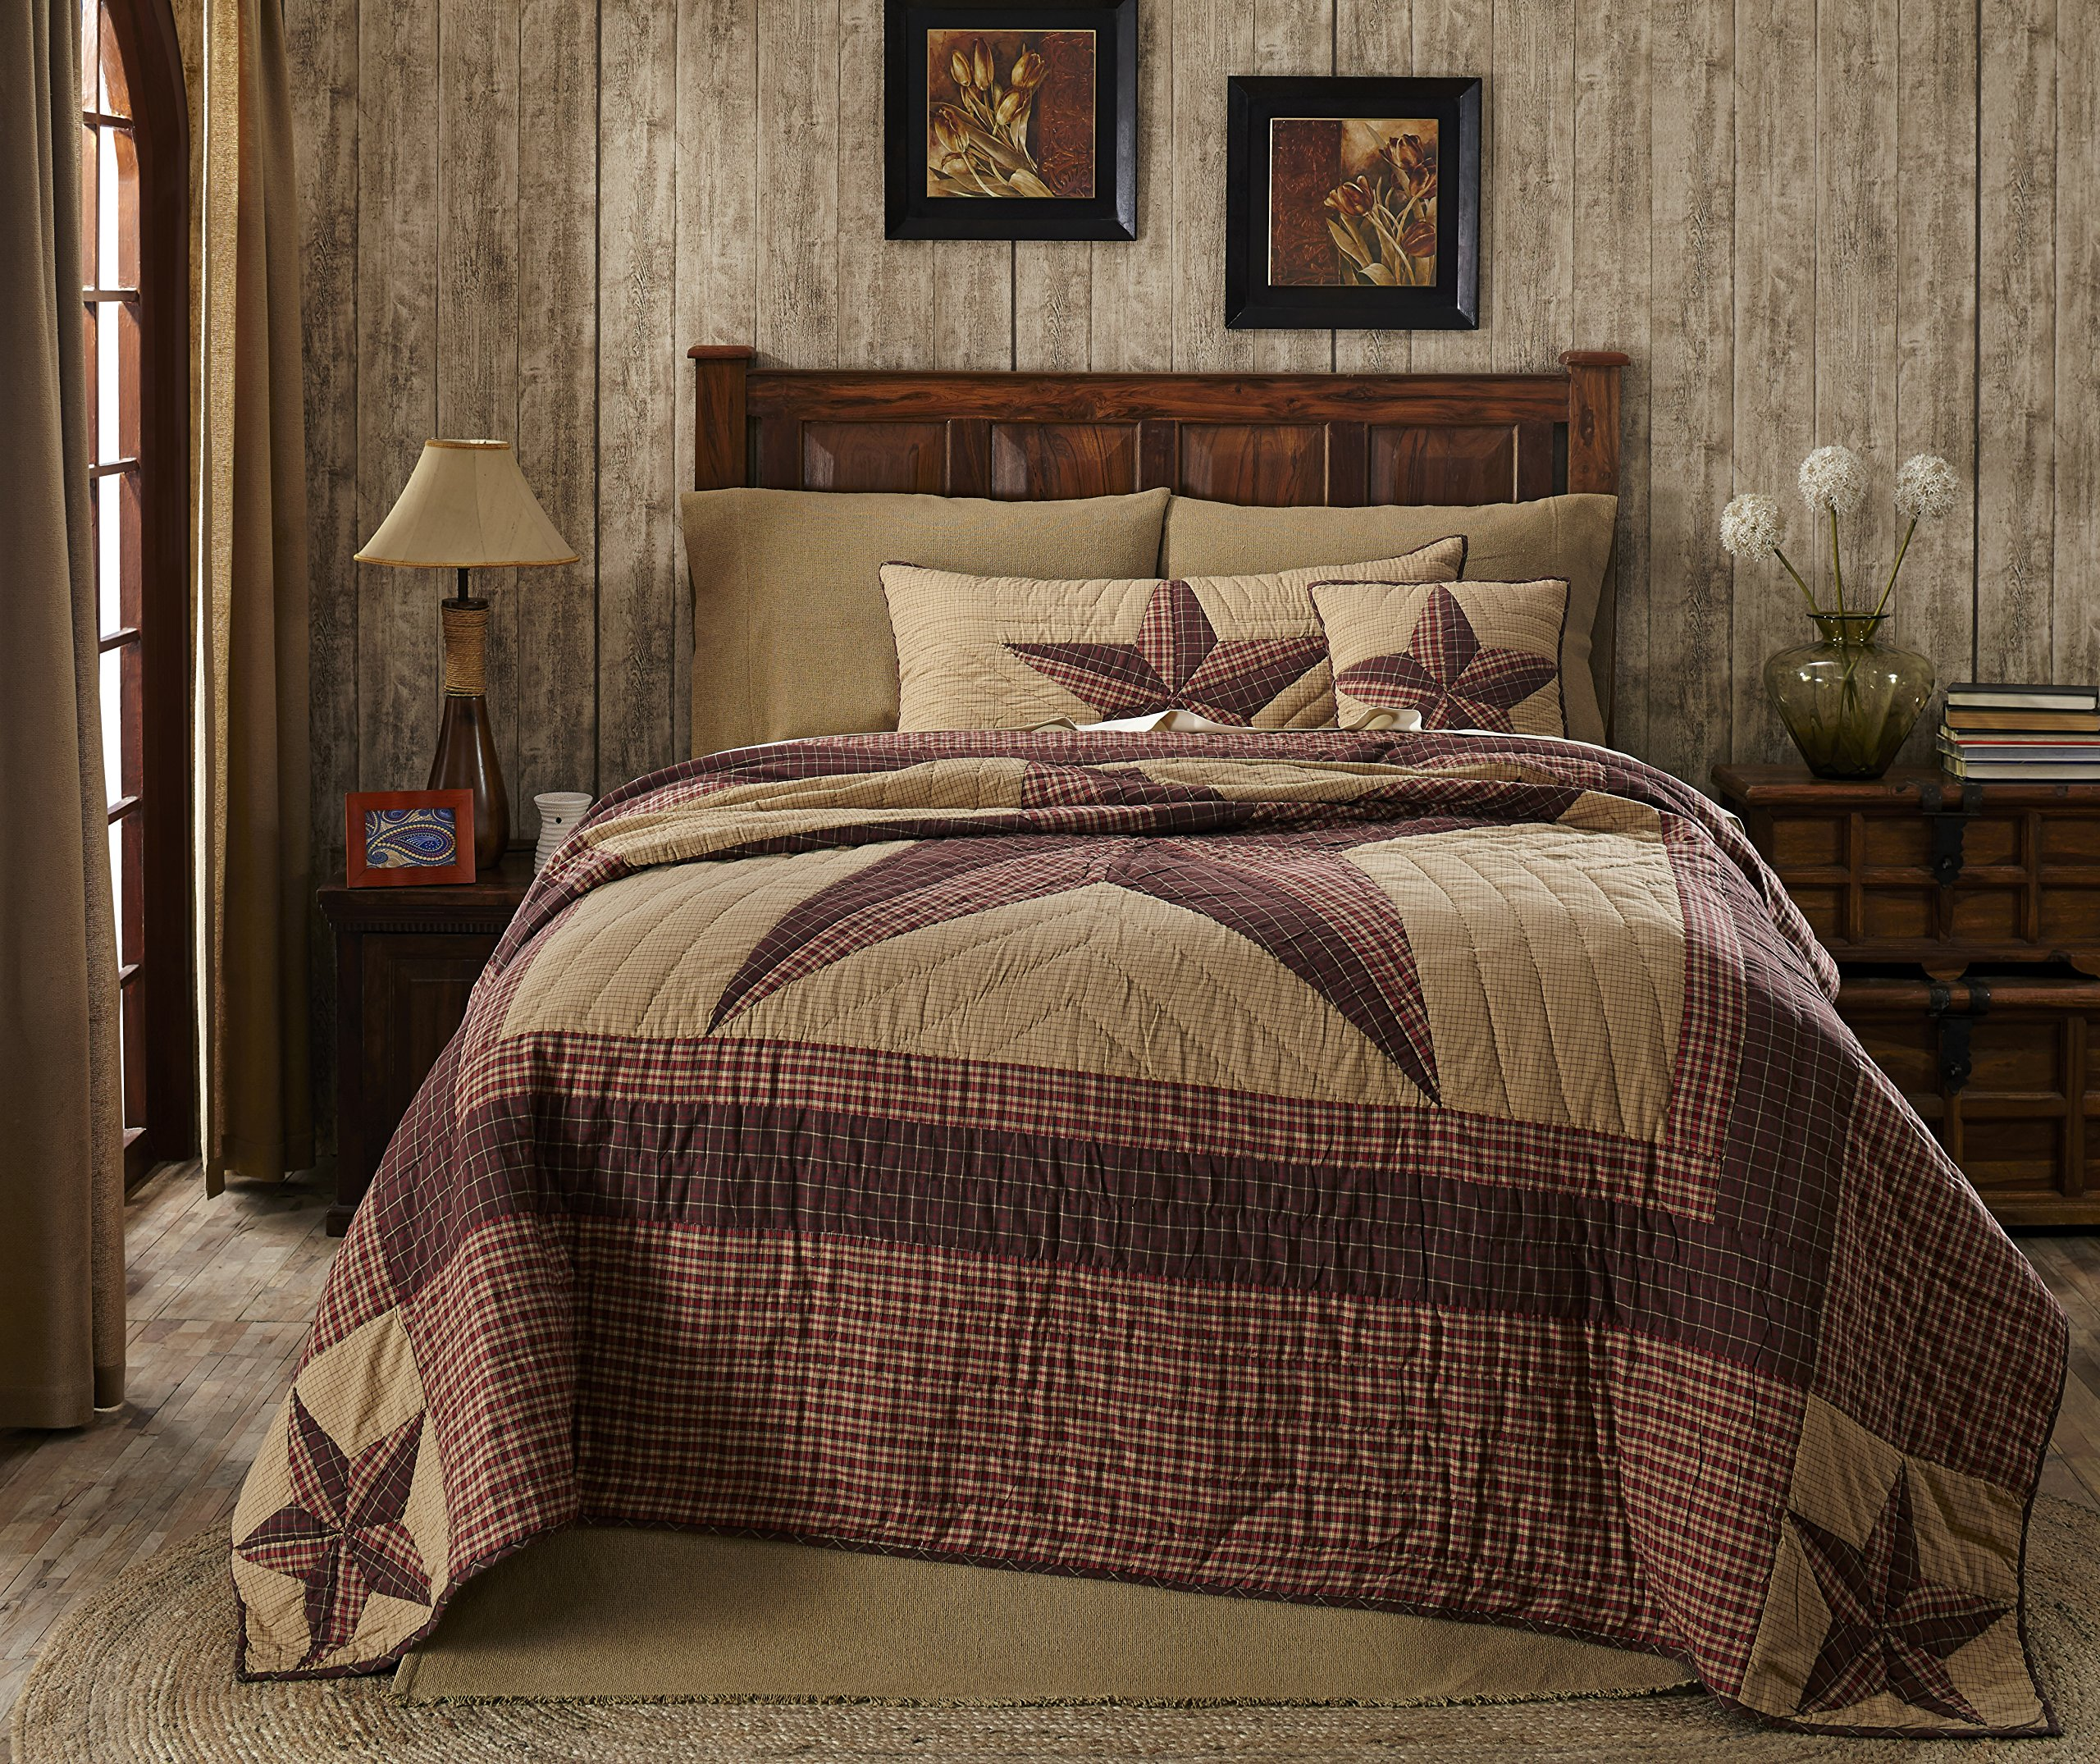 Landon 4 Piece Queen Quilt Set